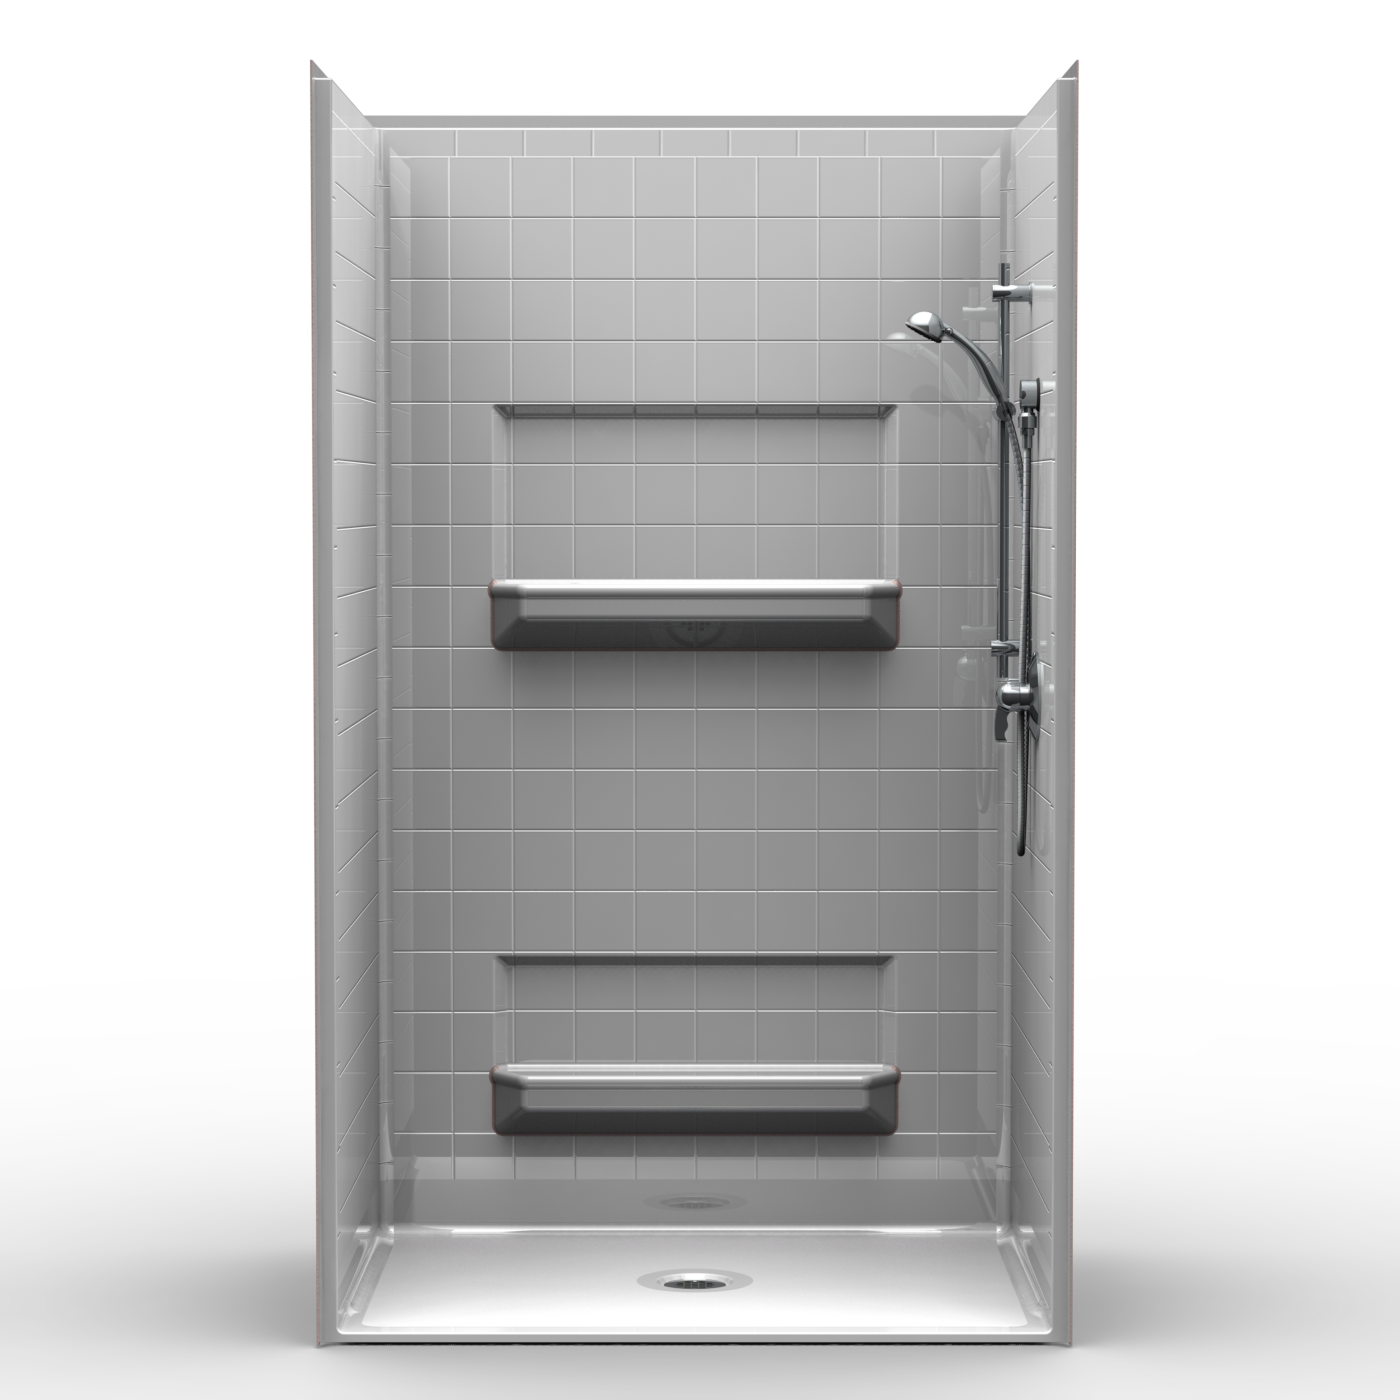 A Fully Installed 48 Inch Shower Stall Without the Wait | ORCA ...